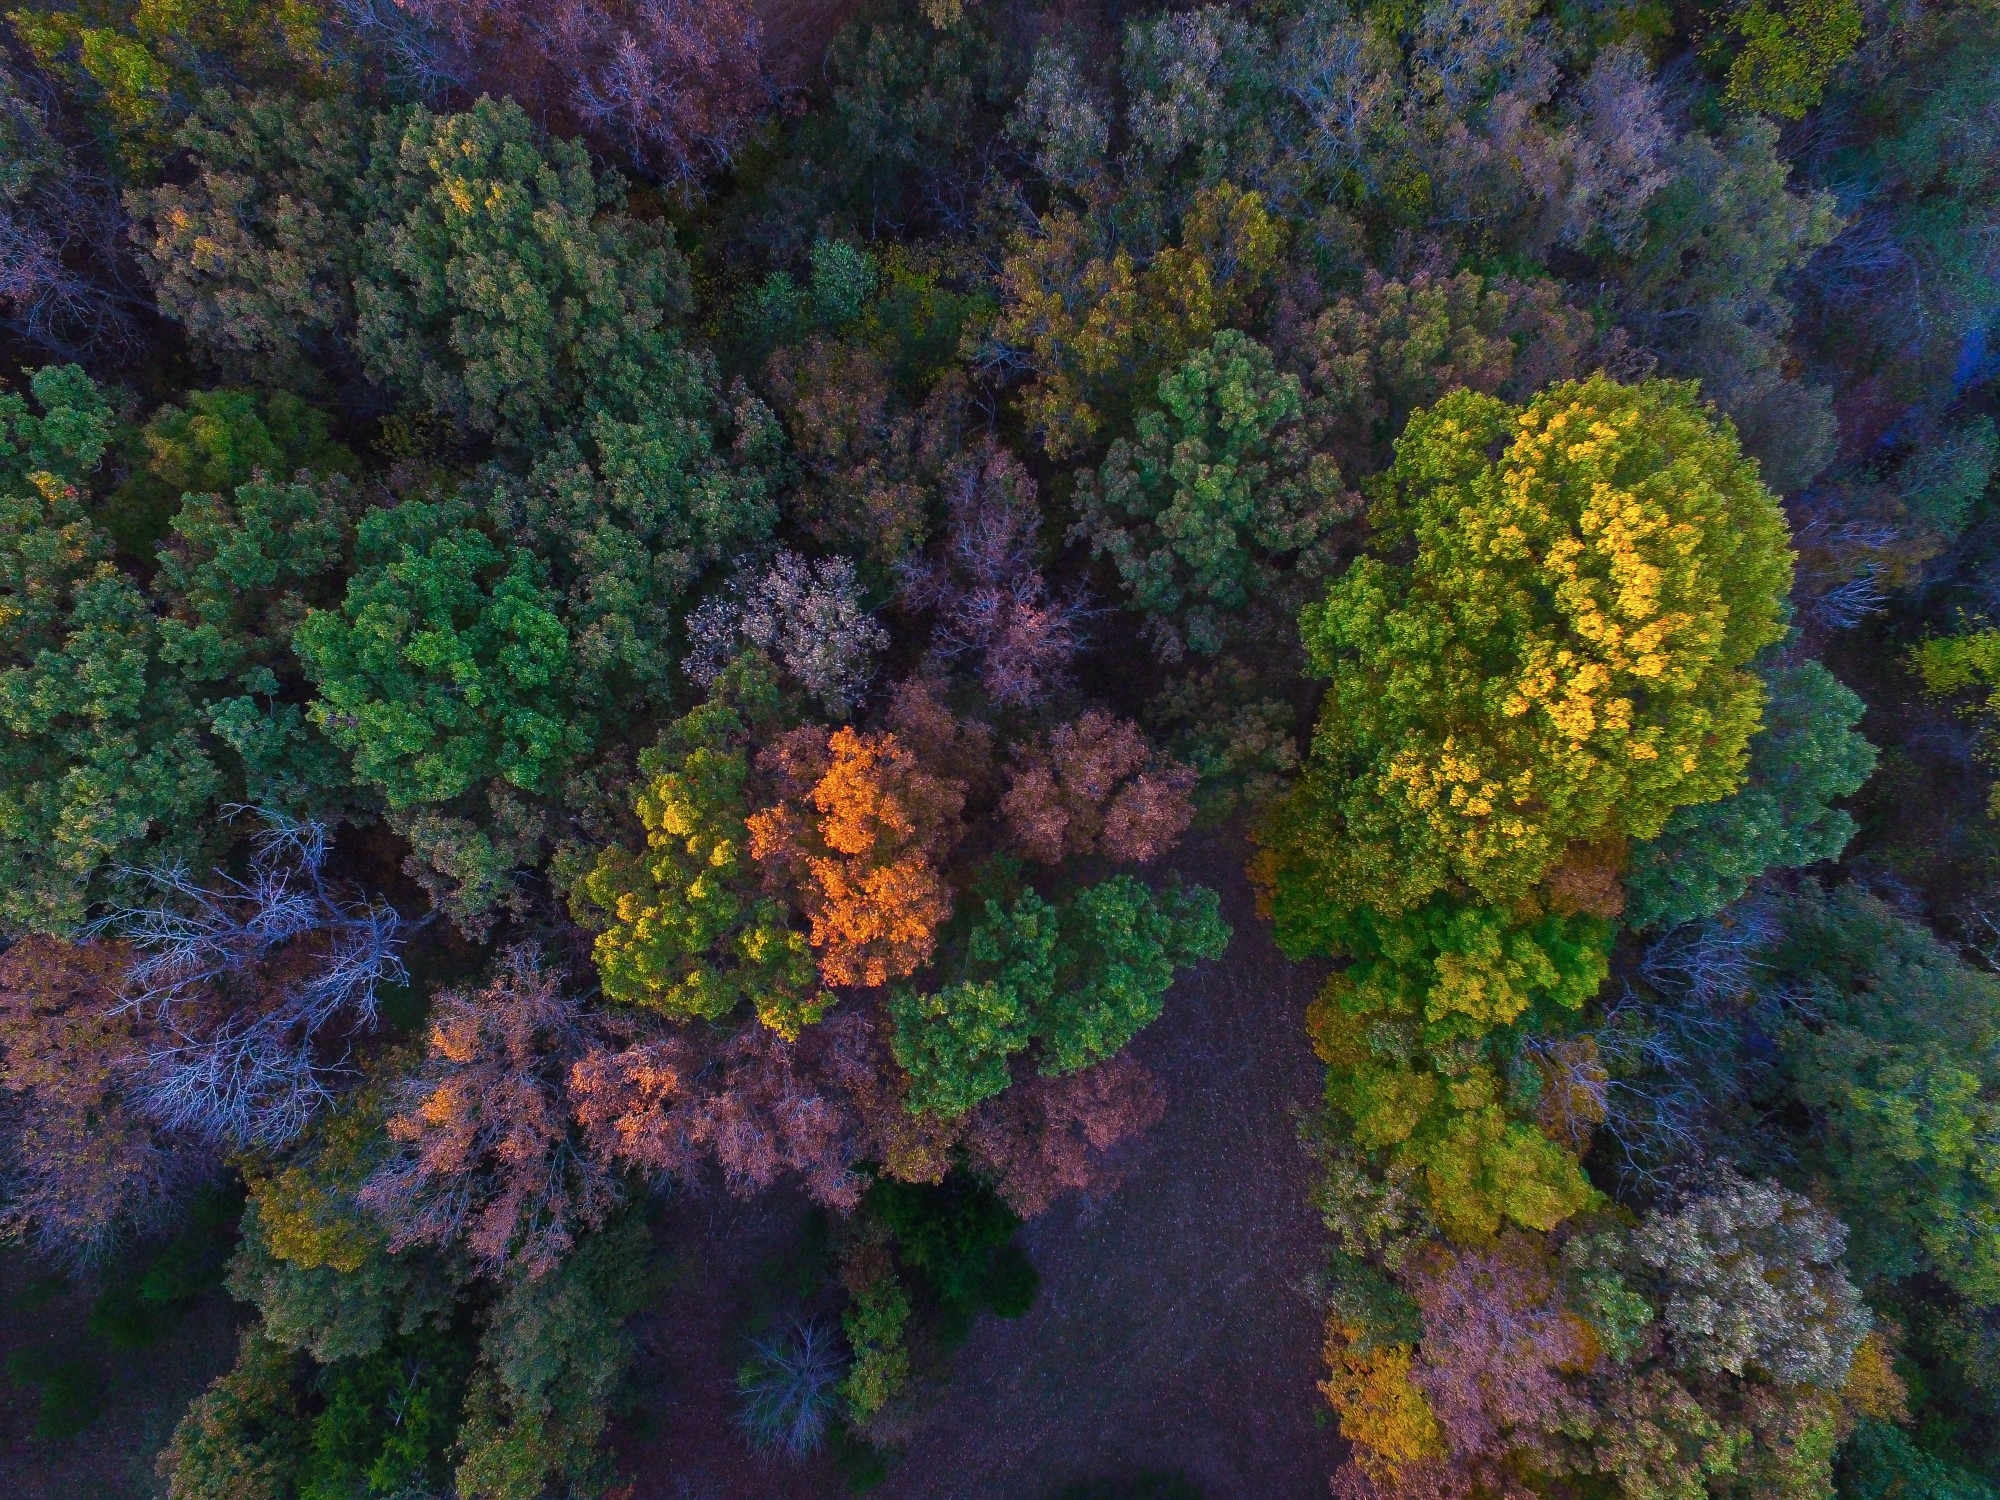 Fall Weekend at the farm autumn leaves and trees DJI Phantom 3 advanced video and Outfit of the day! By lauren lindmark on dailydoseofcharm.com lauren lindmark